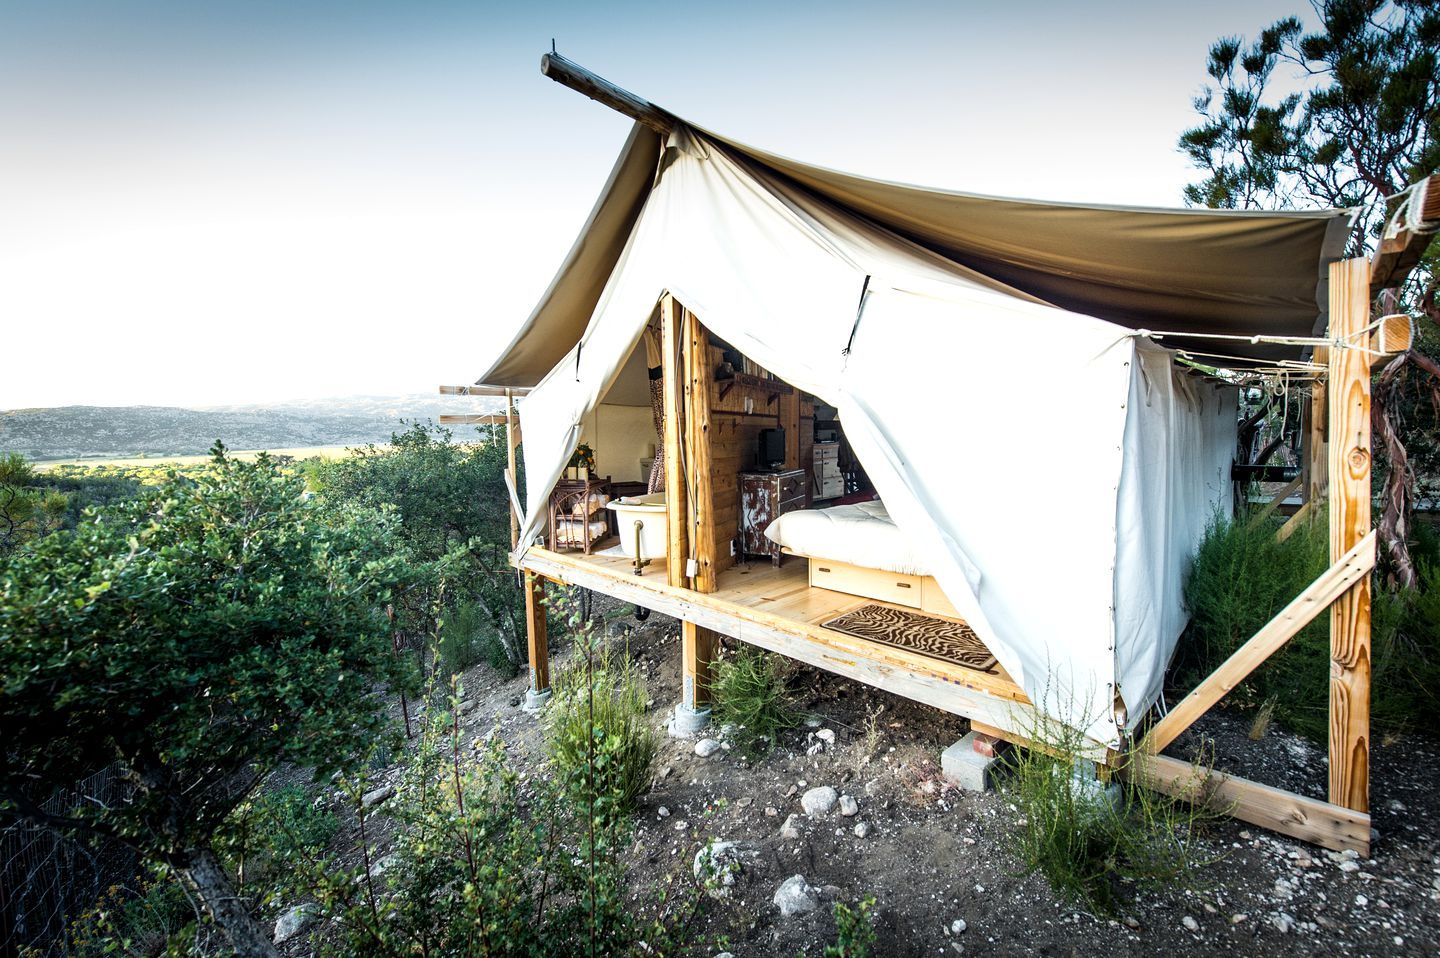 Safari cabin tent for weekend getaway in California.